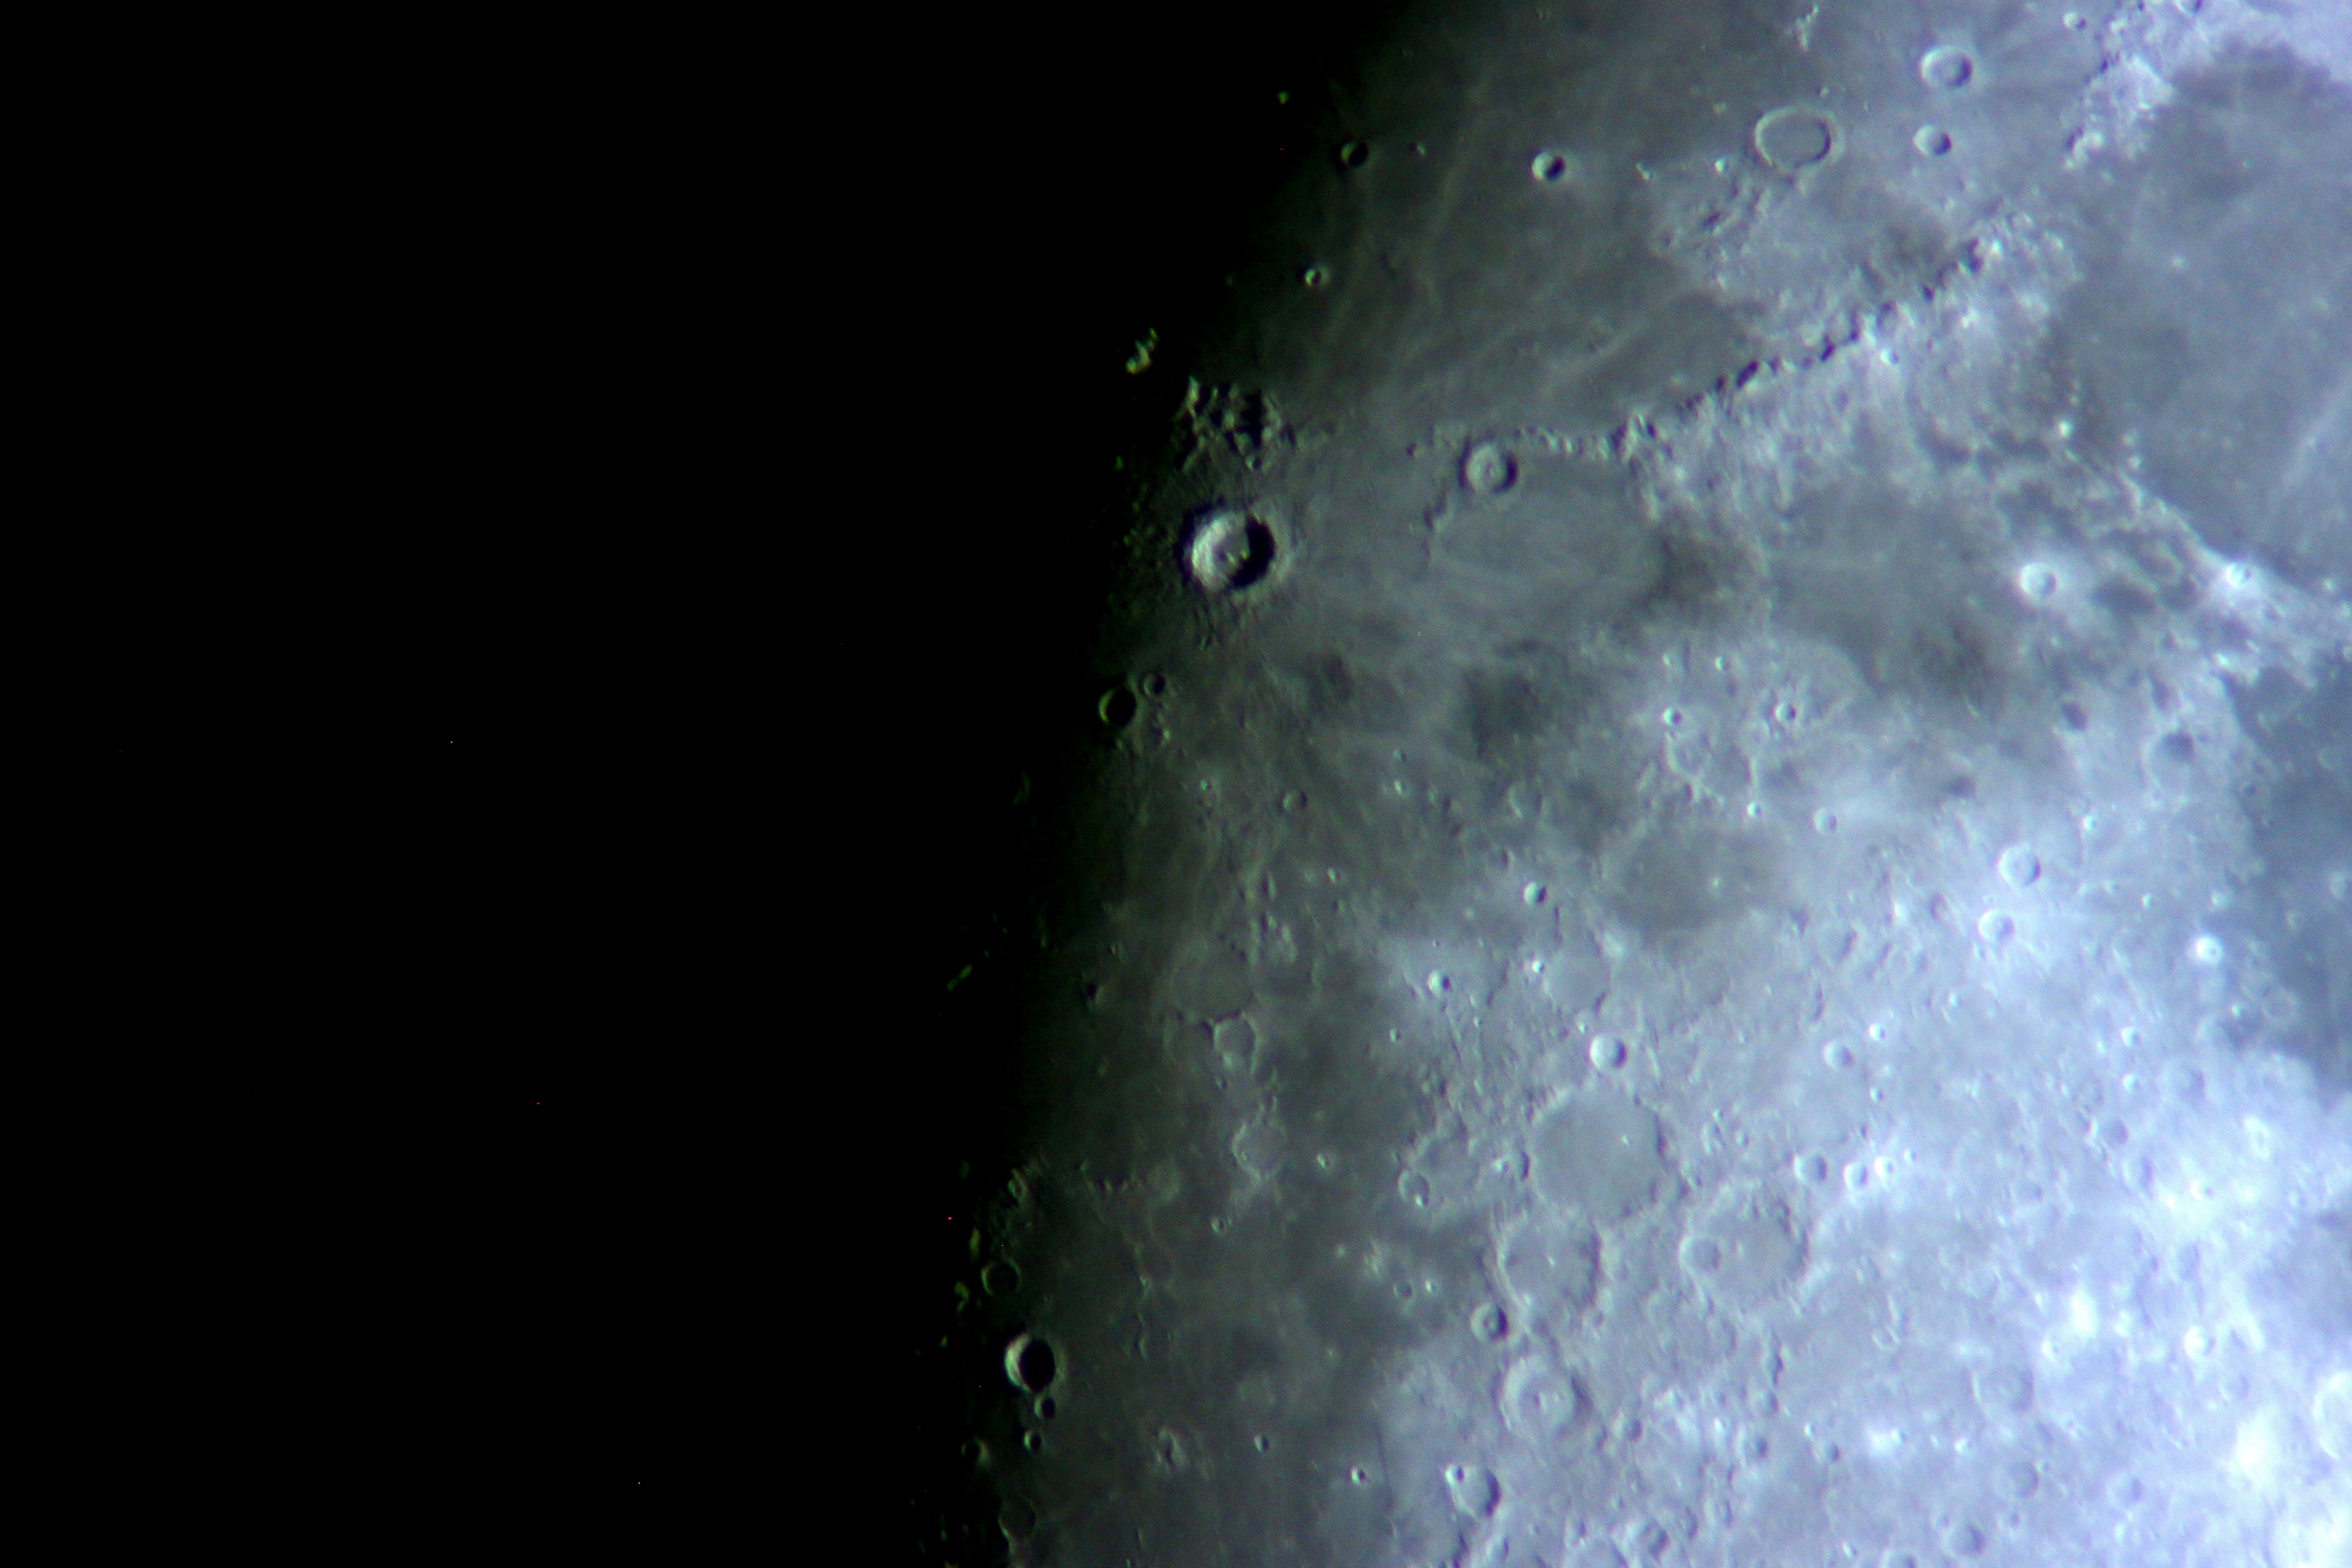 The prominent crater in the upper middle is Copernicus, with the Apennine mountains curving away to the northeast, marking the rim of Mare Imbrium, the Sea of Rains. Near the lower left are three craters making a backwards comma--these are Ptolemaeus, Alphonsus, and Arzachel (Arzachel has a prominent central peak).